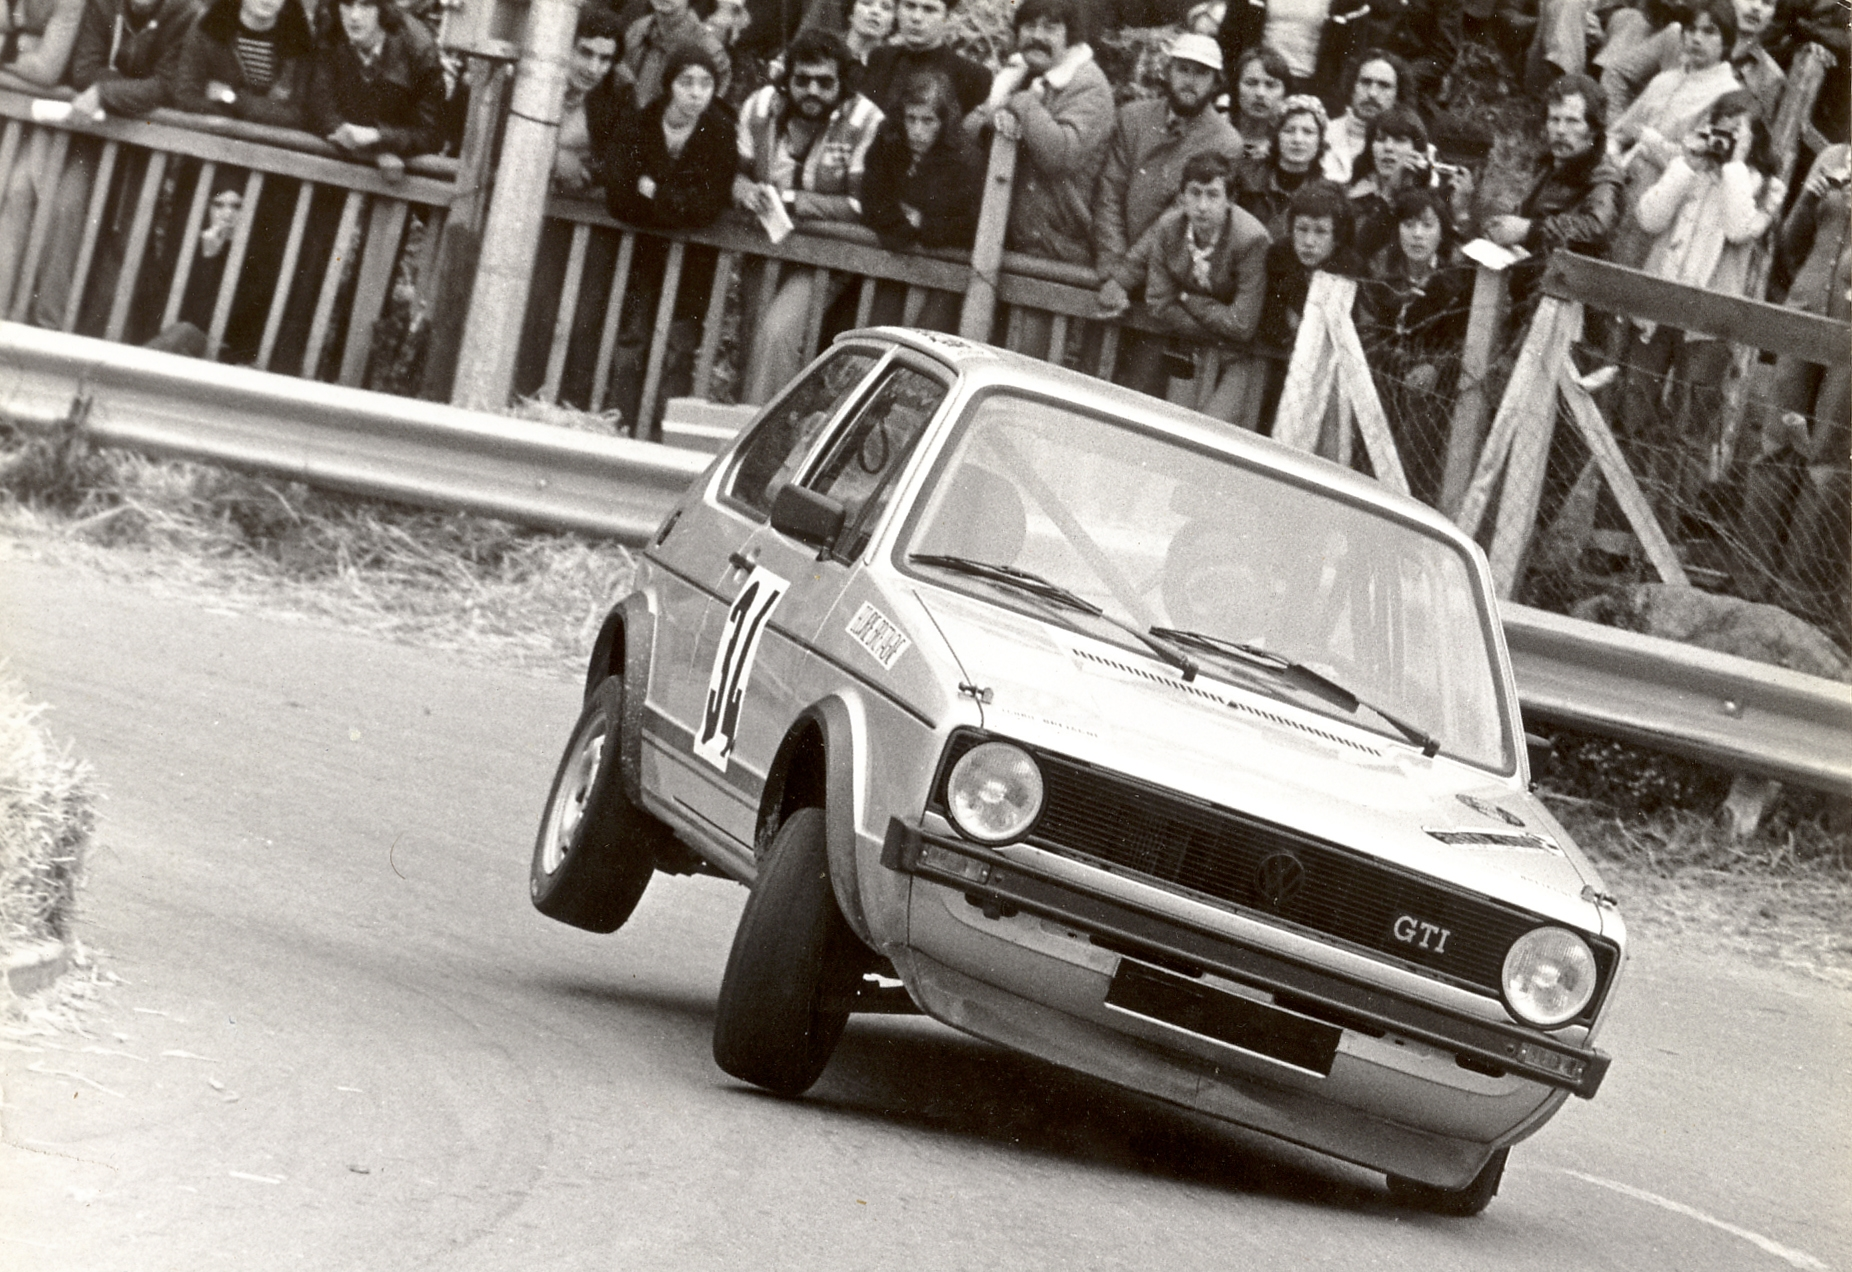 Thierry Le Bras - VW Golf GTI - 1977 - Saint-Germain-sur-Ille - Photo Actualité